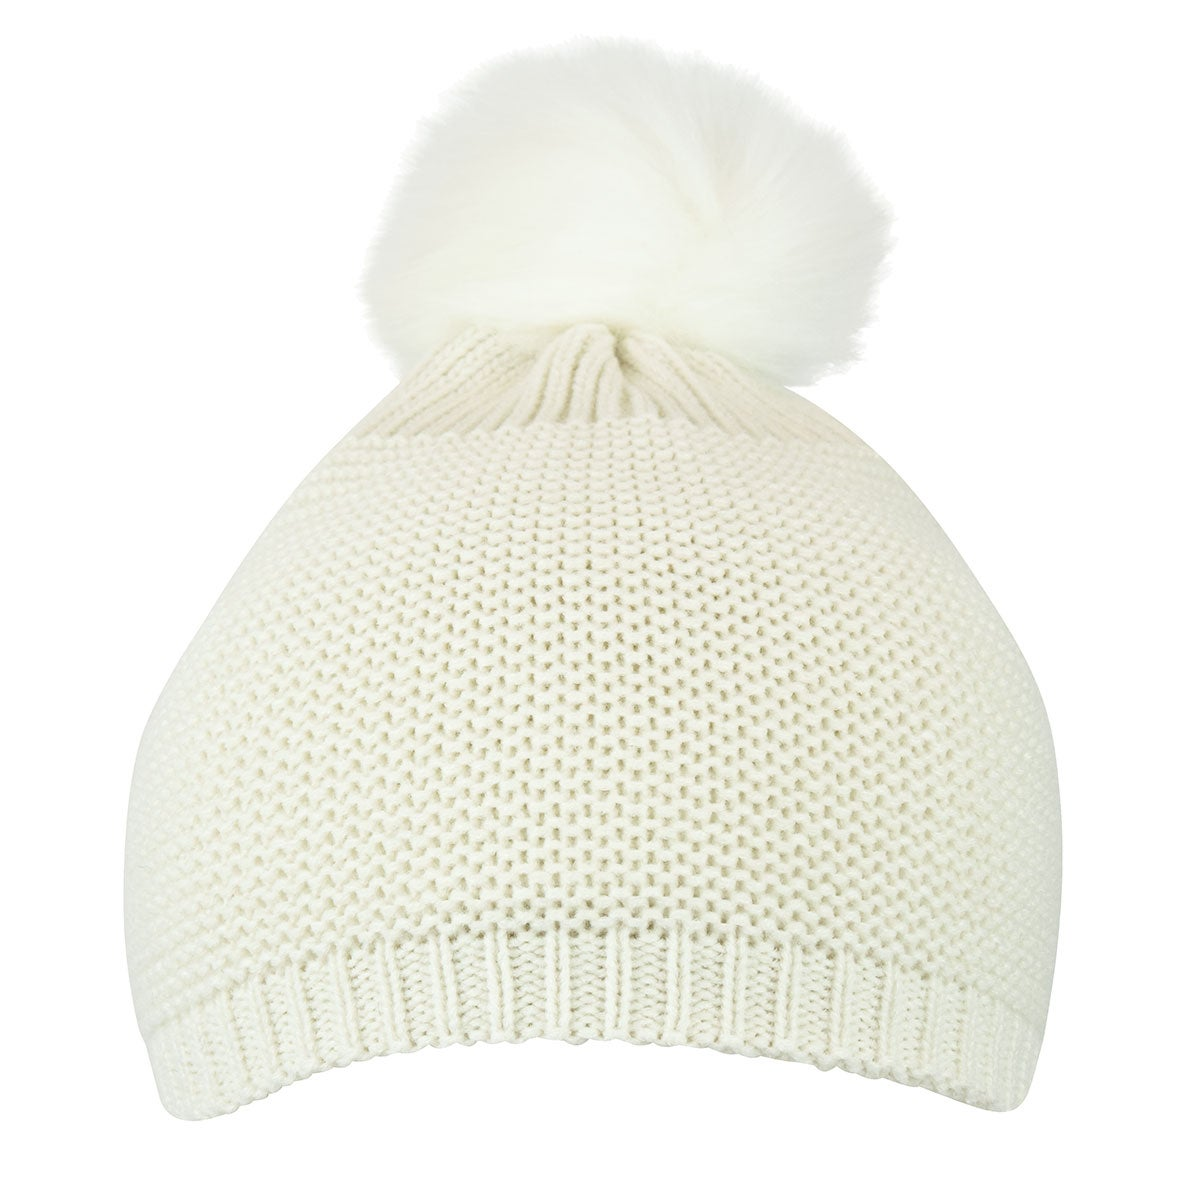 Capelli / GMA Accessories Mixed Purl Beanie w Faux Fur Pom in Ivory